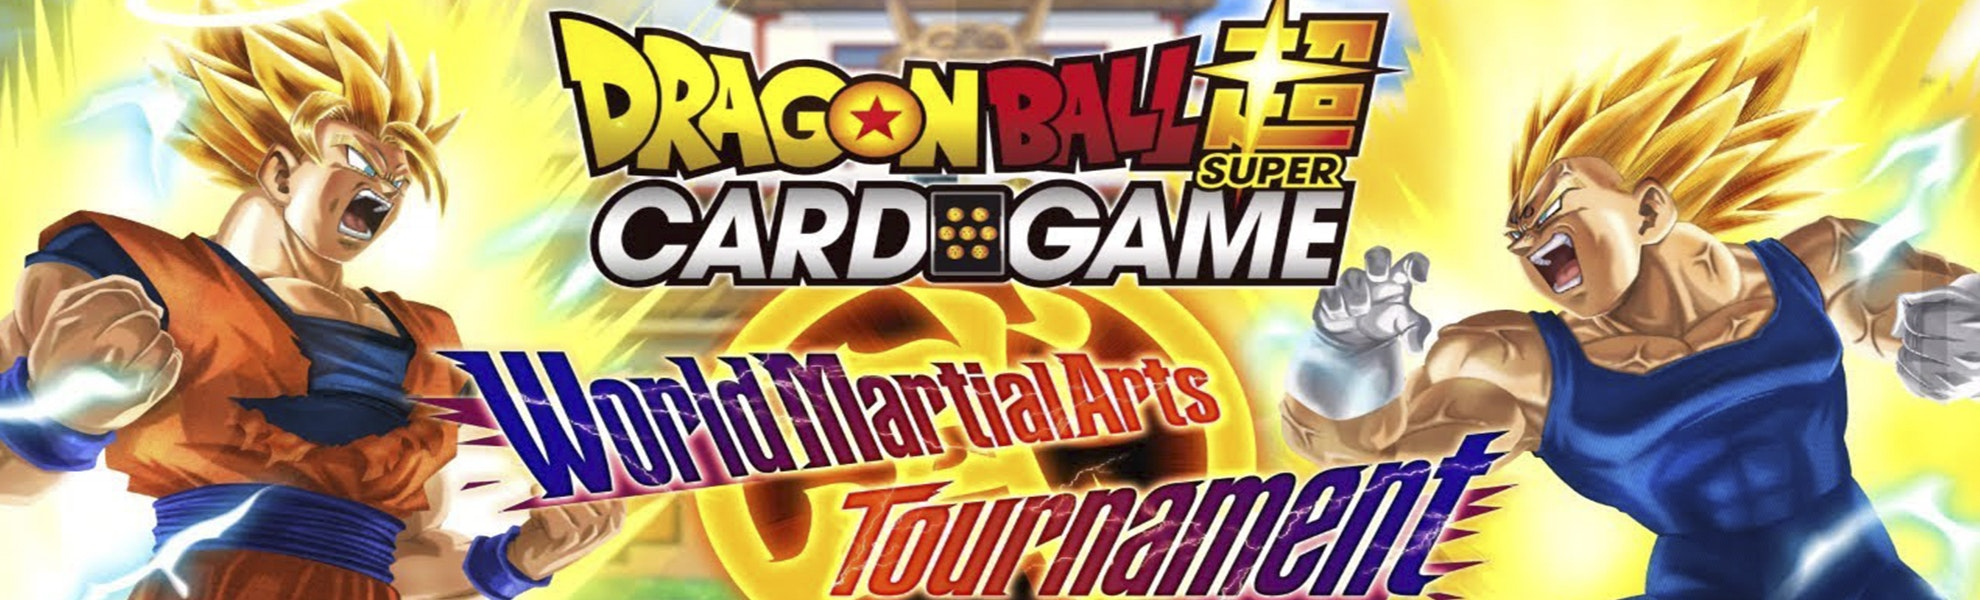 DBZ Super Martial Arts Tournament Booster Box